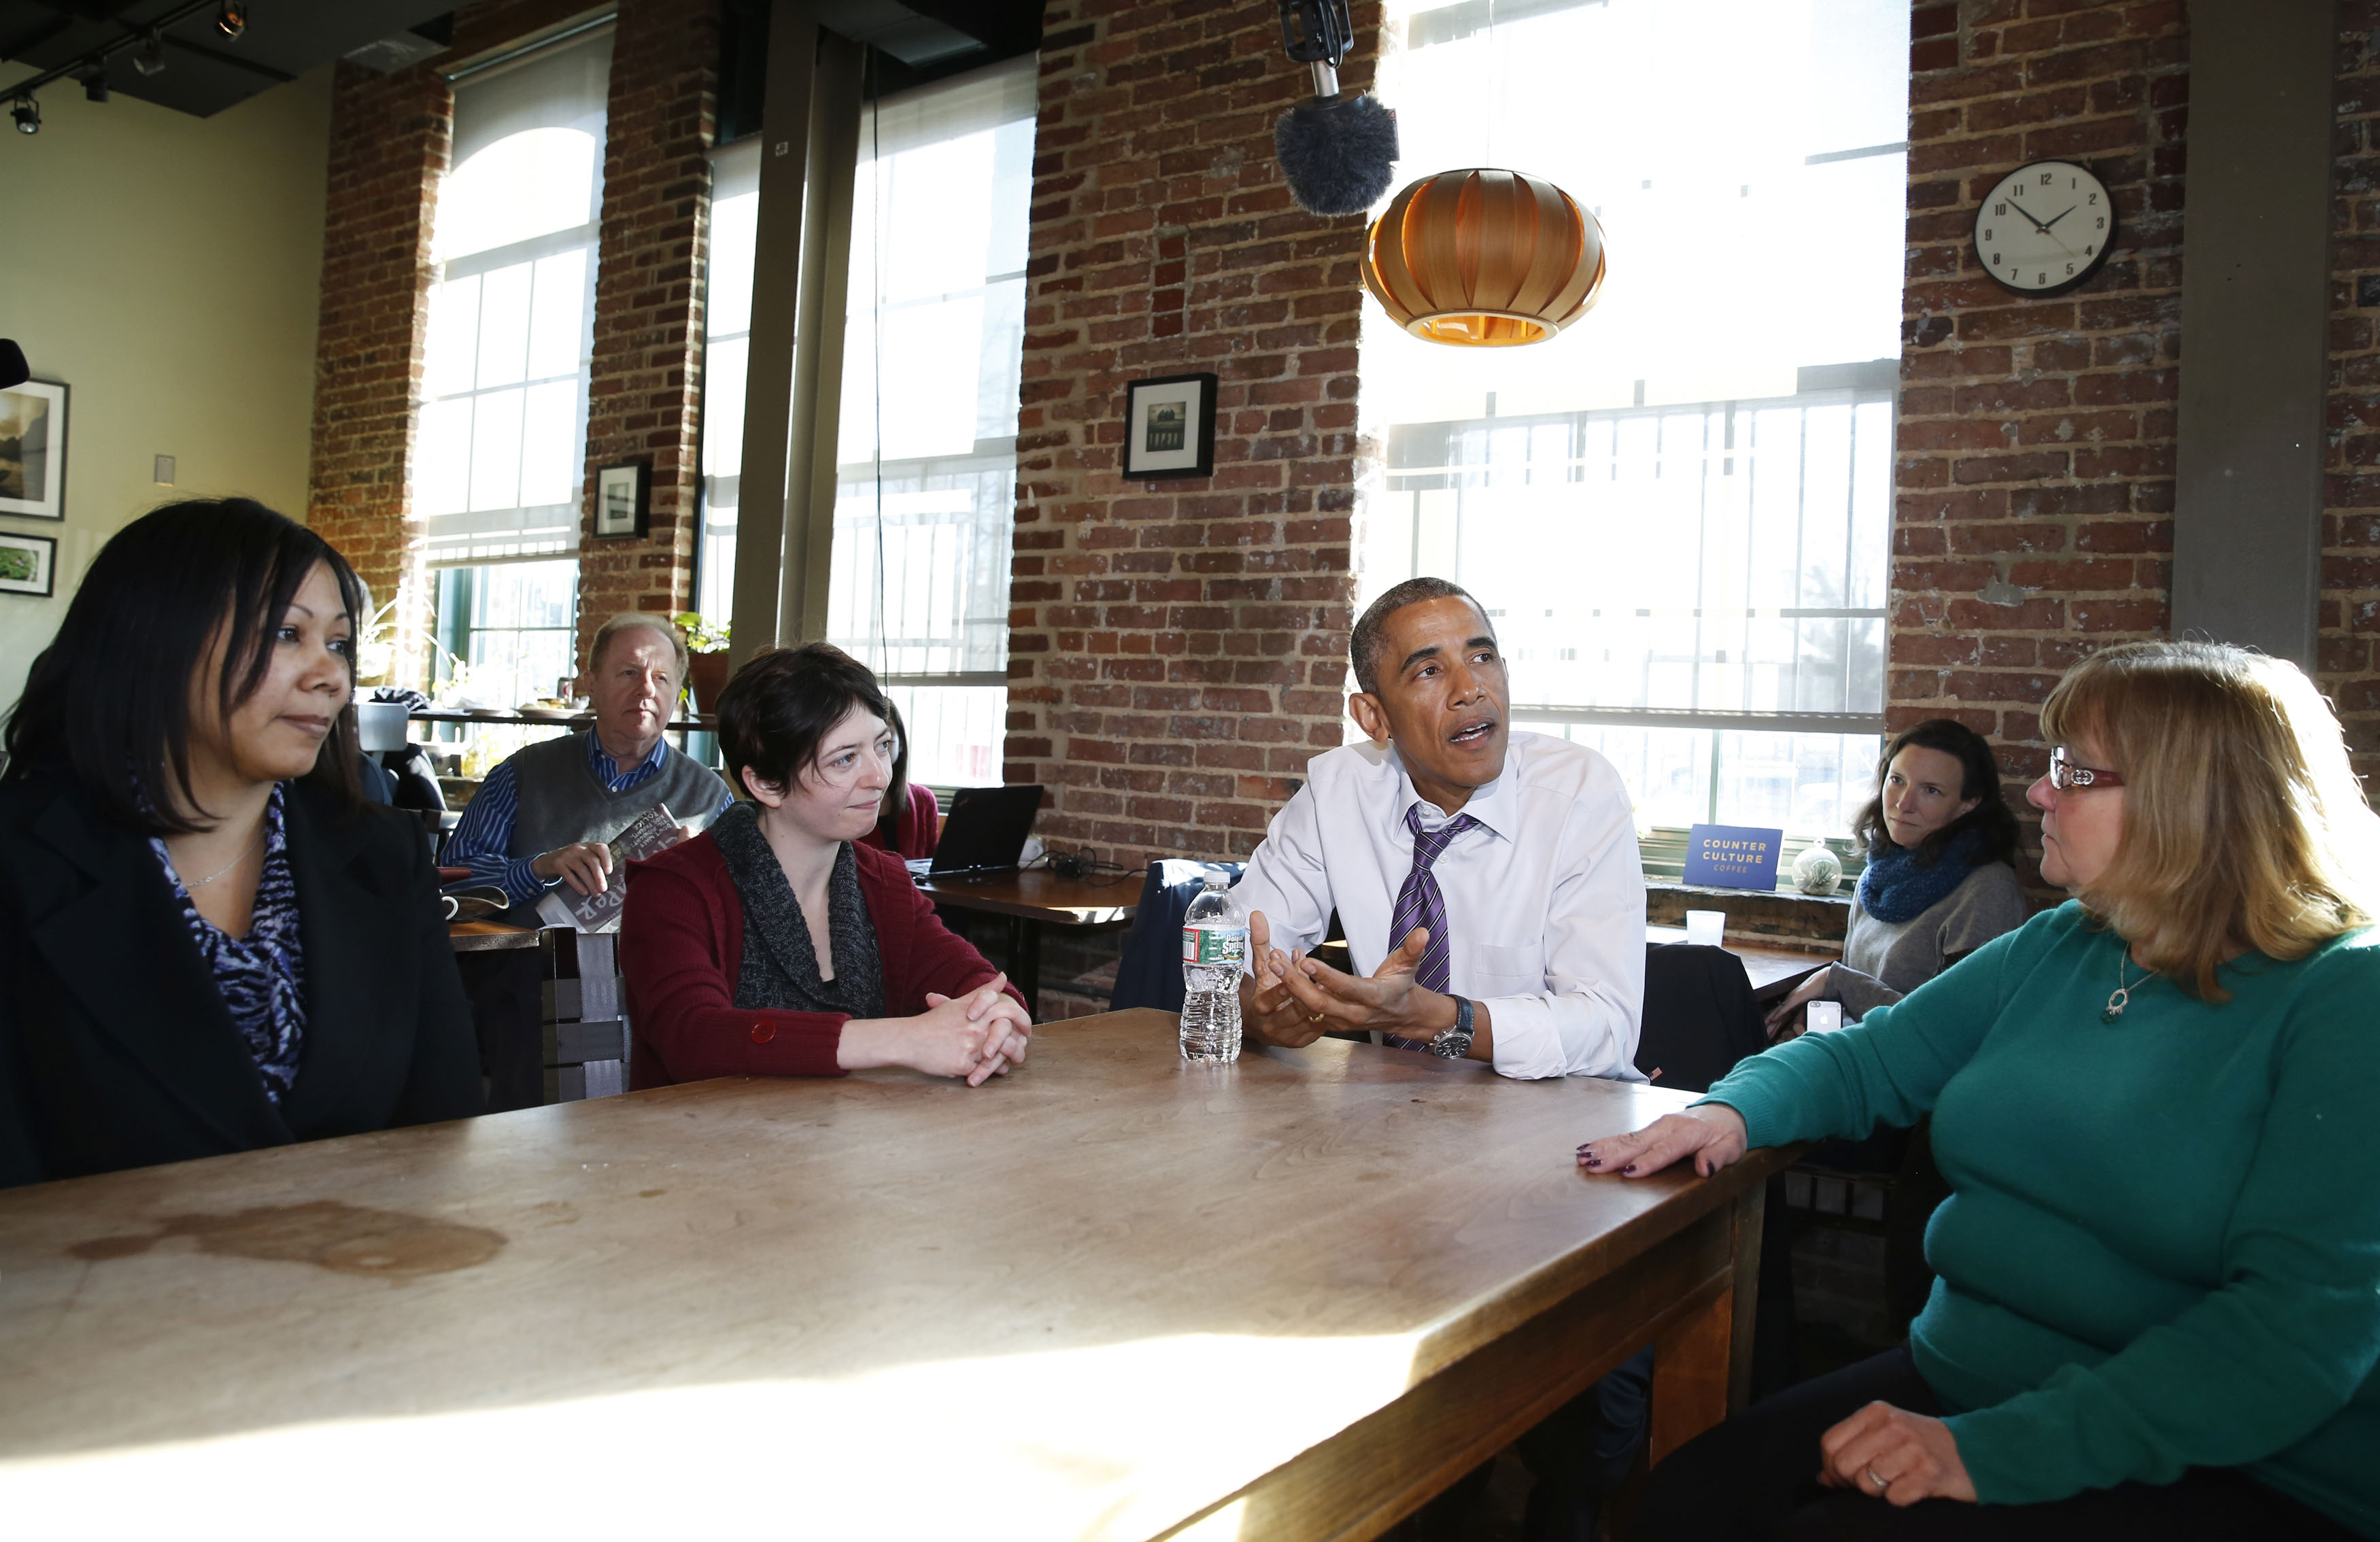 U.S. President Barack Obama speaks about legislation to offer paid sick leave for Americans while at Charmington's Cafe in Baltimore